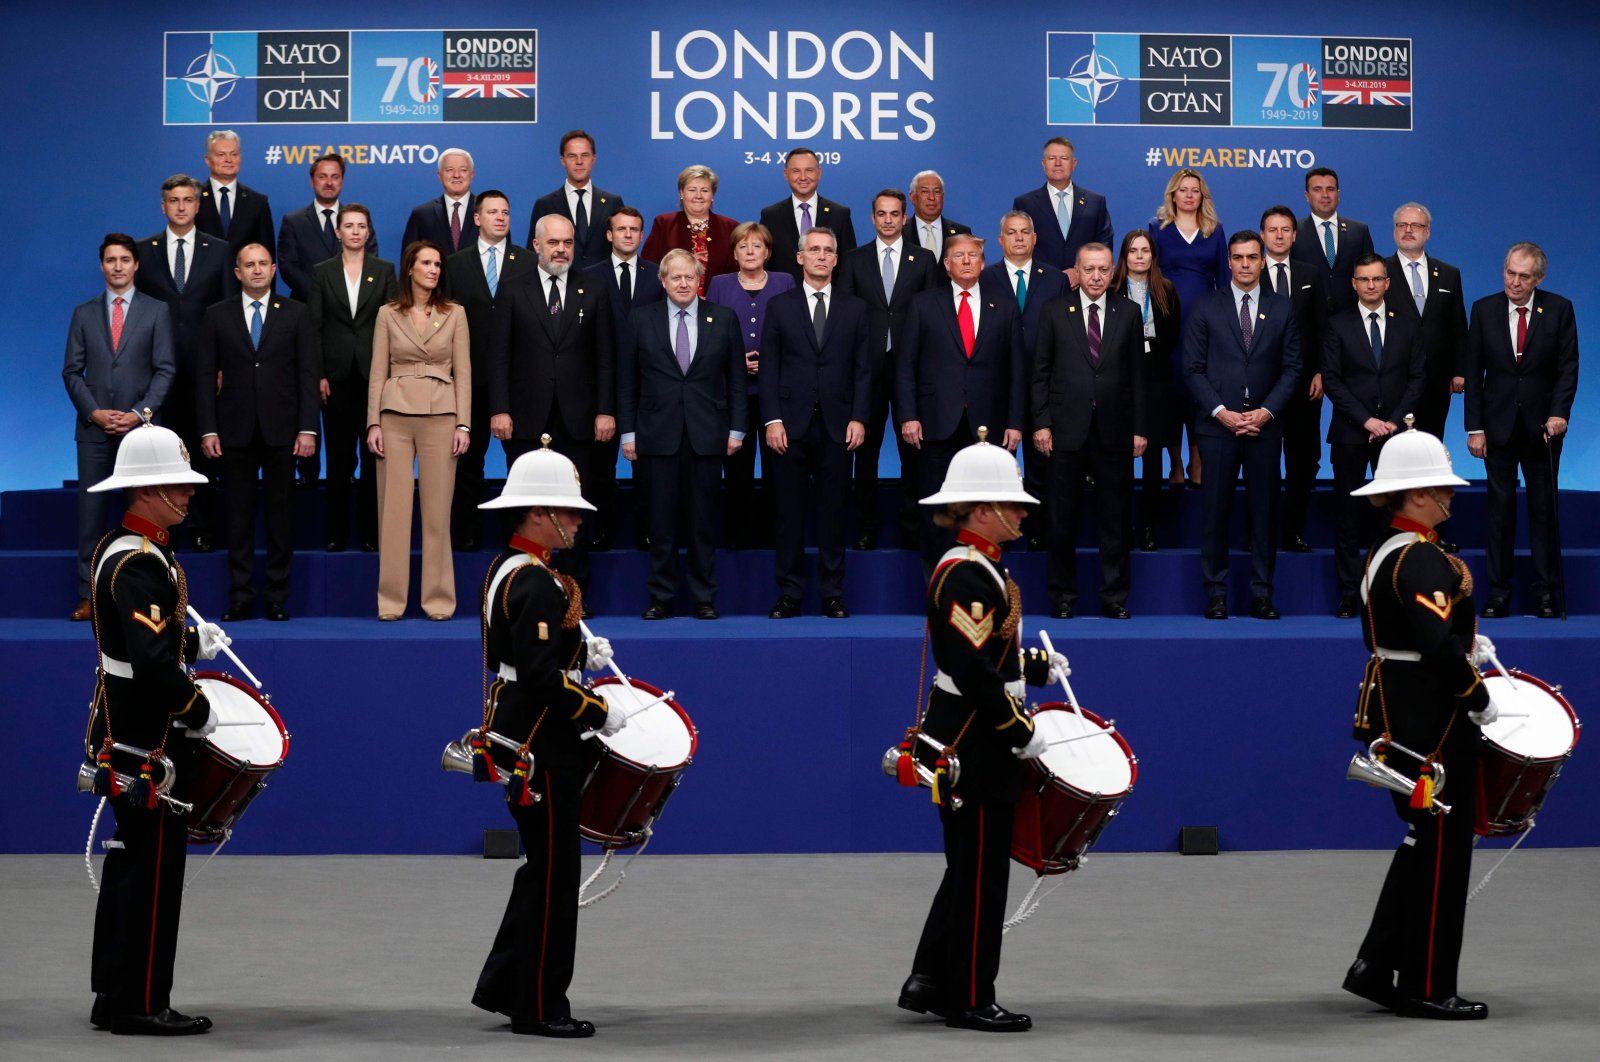 NATO heads of government watch a marching band perform as they pose for the family photo at the NATO summit at the Grove hotel in Watford, northeast of London on Dec. 4, 2019. (AFP)